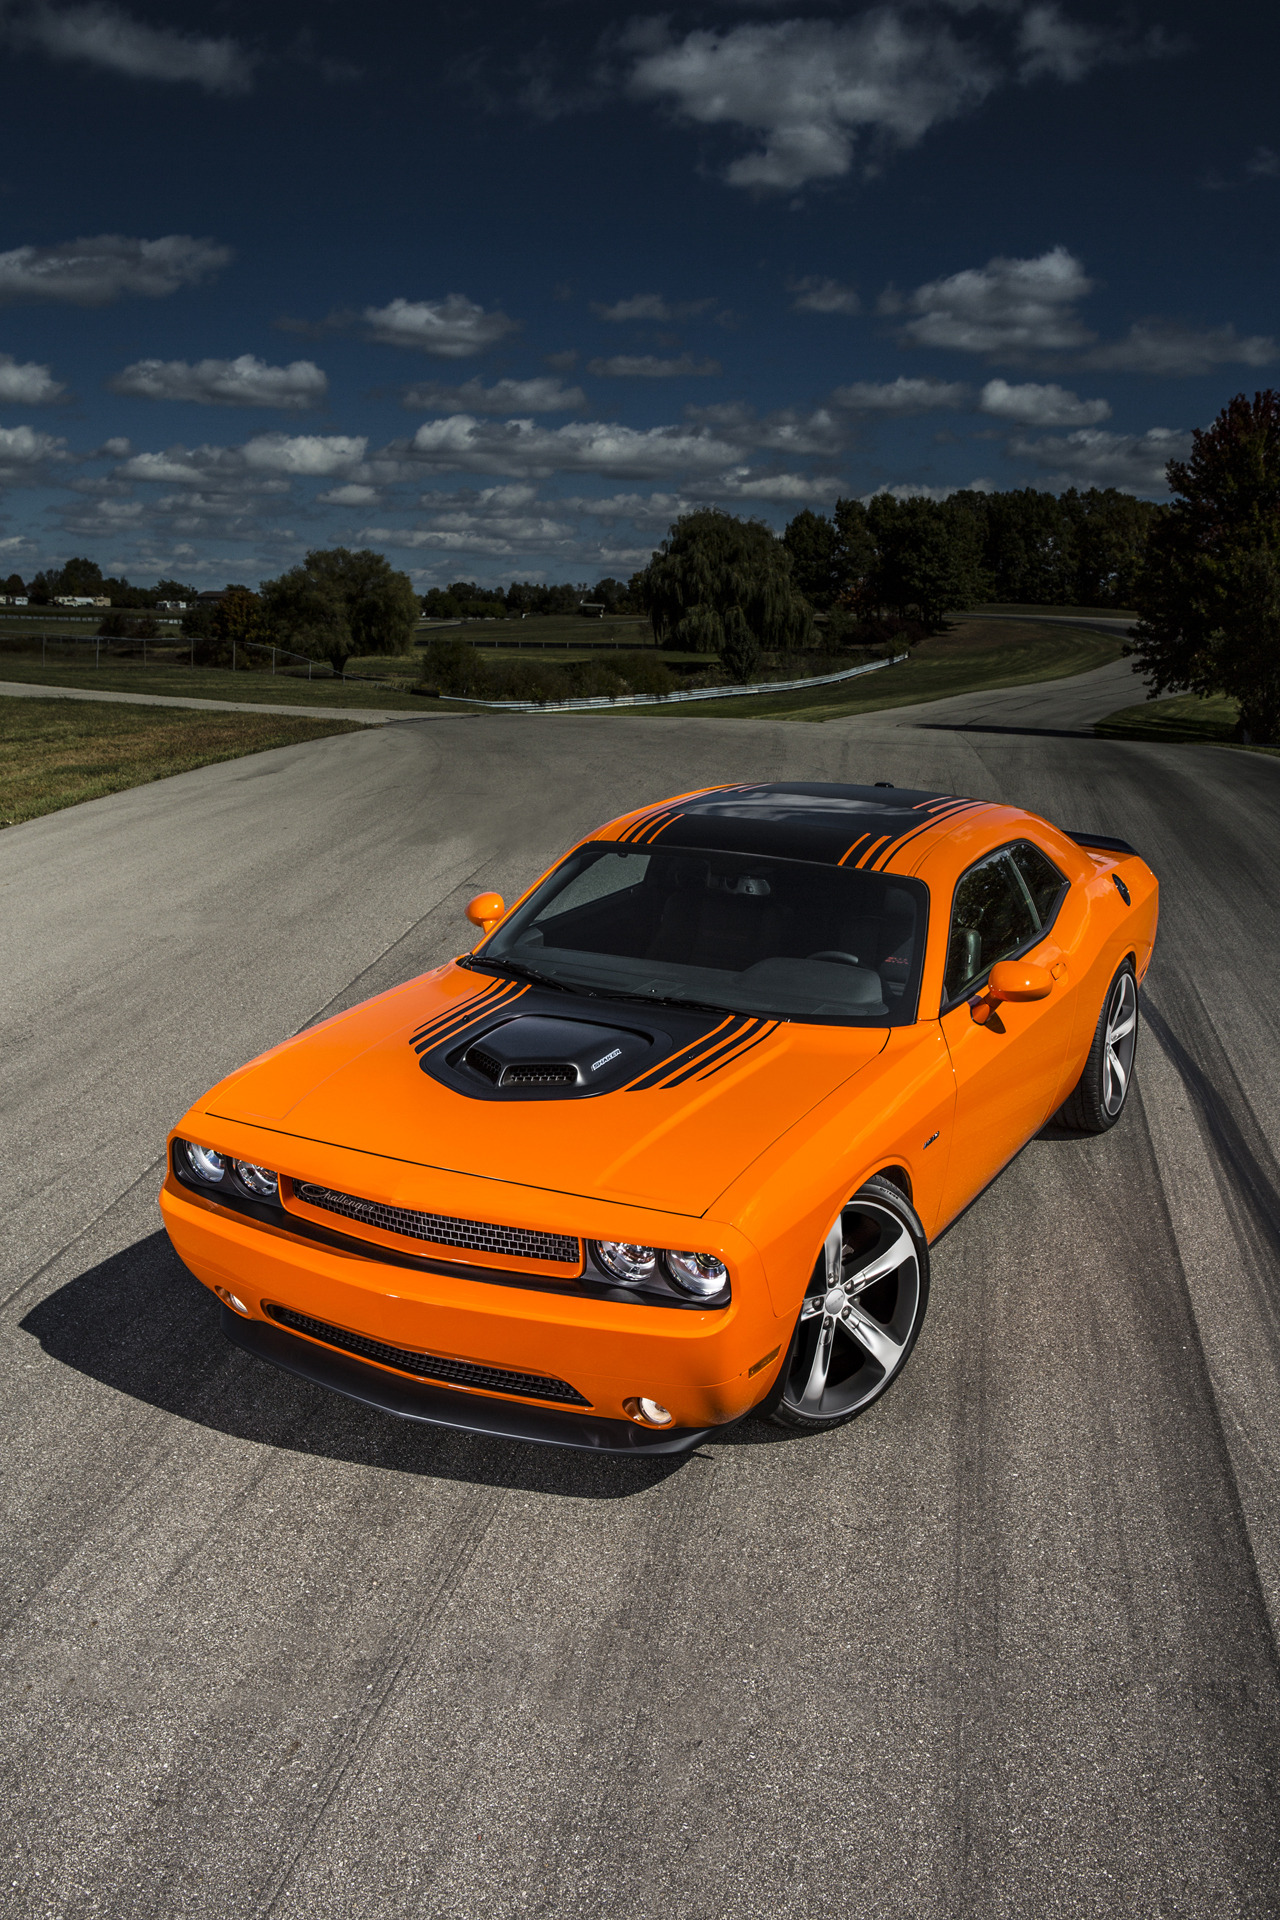 Fast And Furious Iphone 5 Wallpaper 2014 Dodge Challenger R T Shaker Brings Back The Hemi